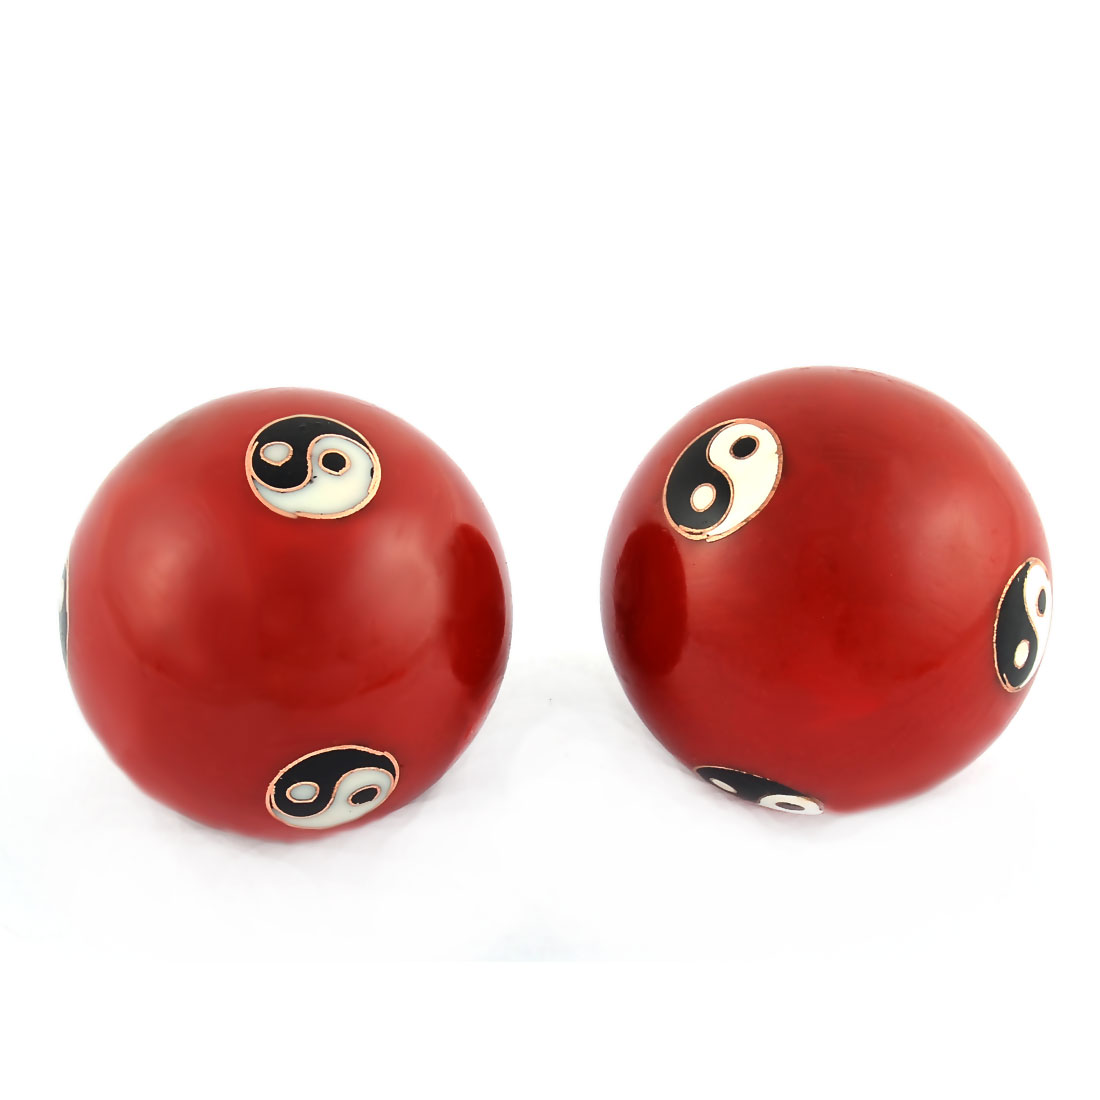 Cloisonne Yin-Yang Pattern Chinese Baoding Exercise Stress Relief Ball Pair